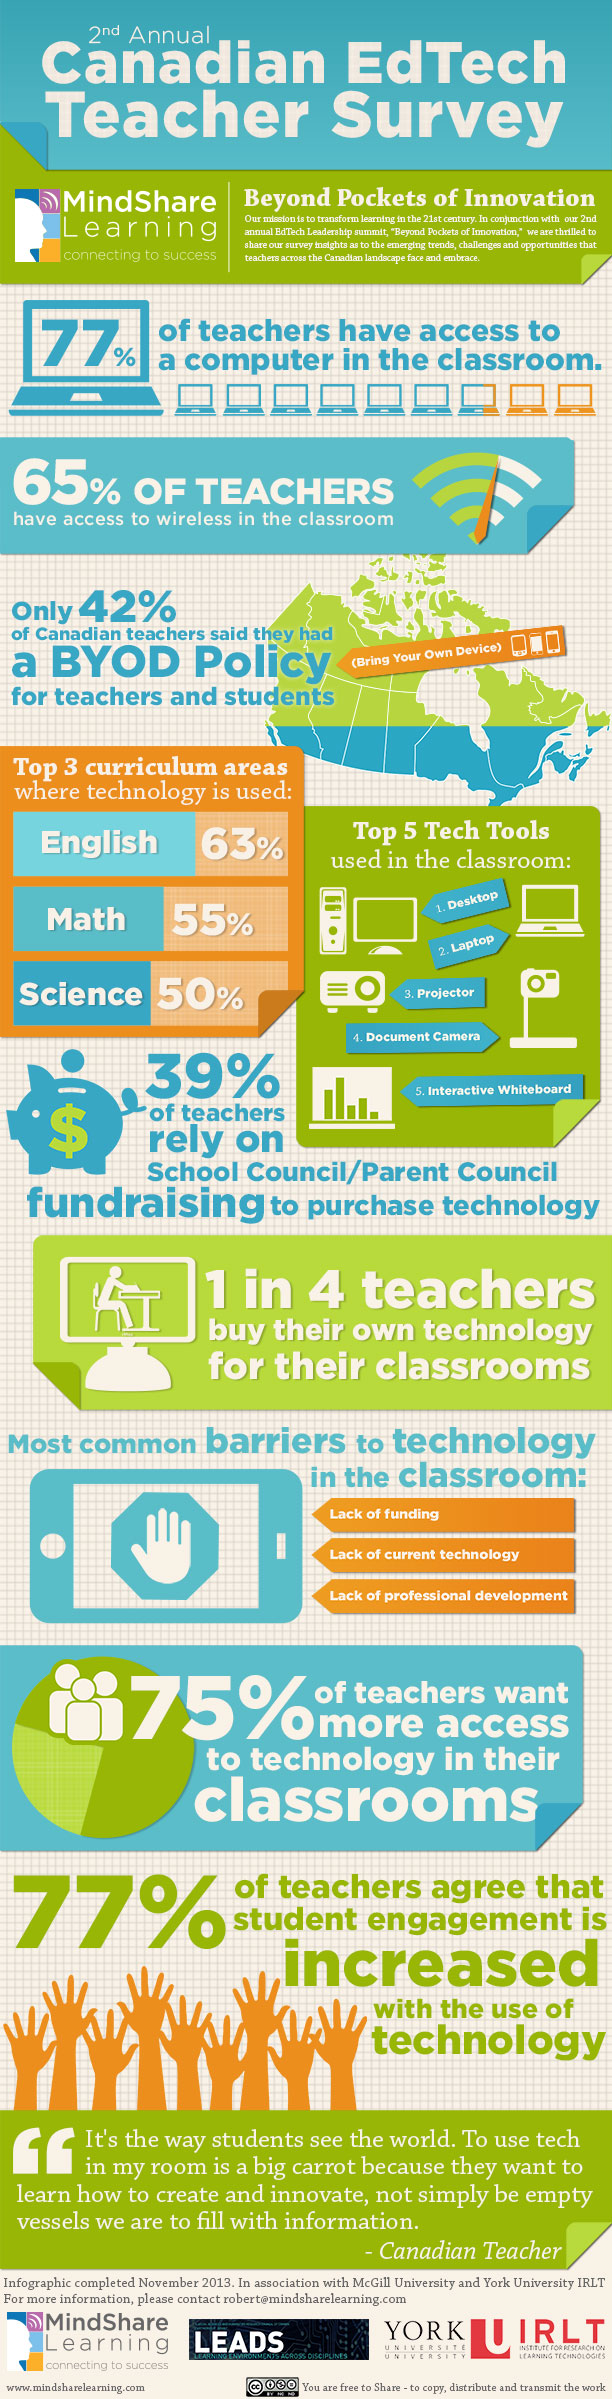 MindShare Learning presents the 2013 Teacher Survey insights!